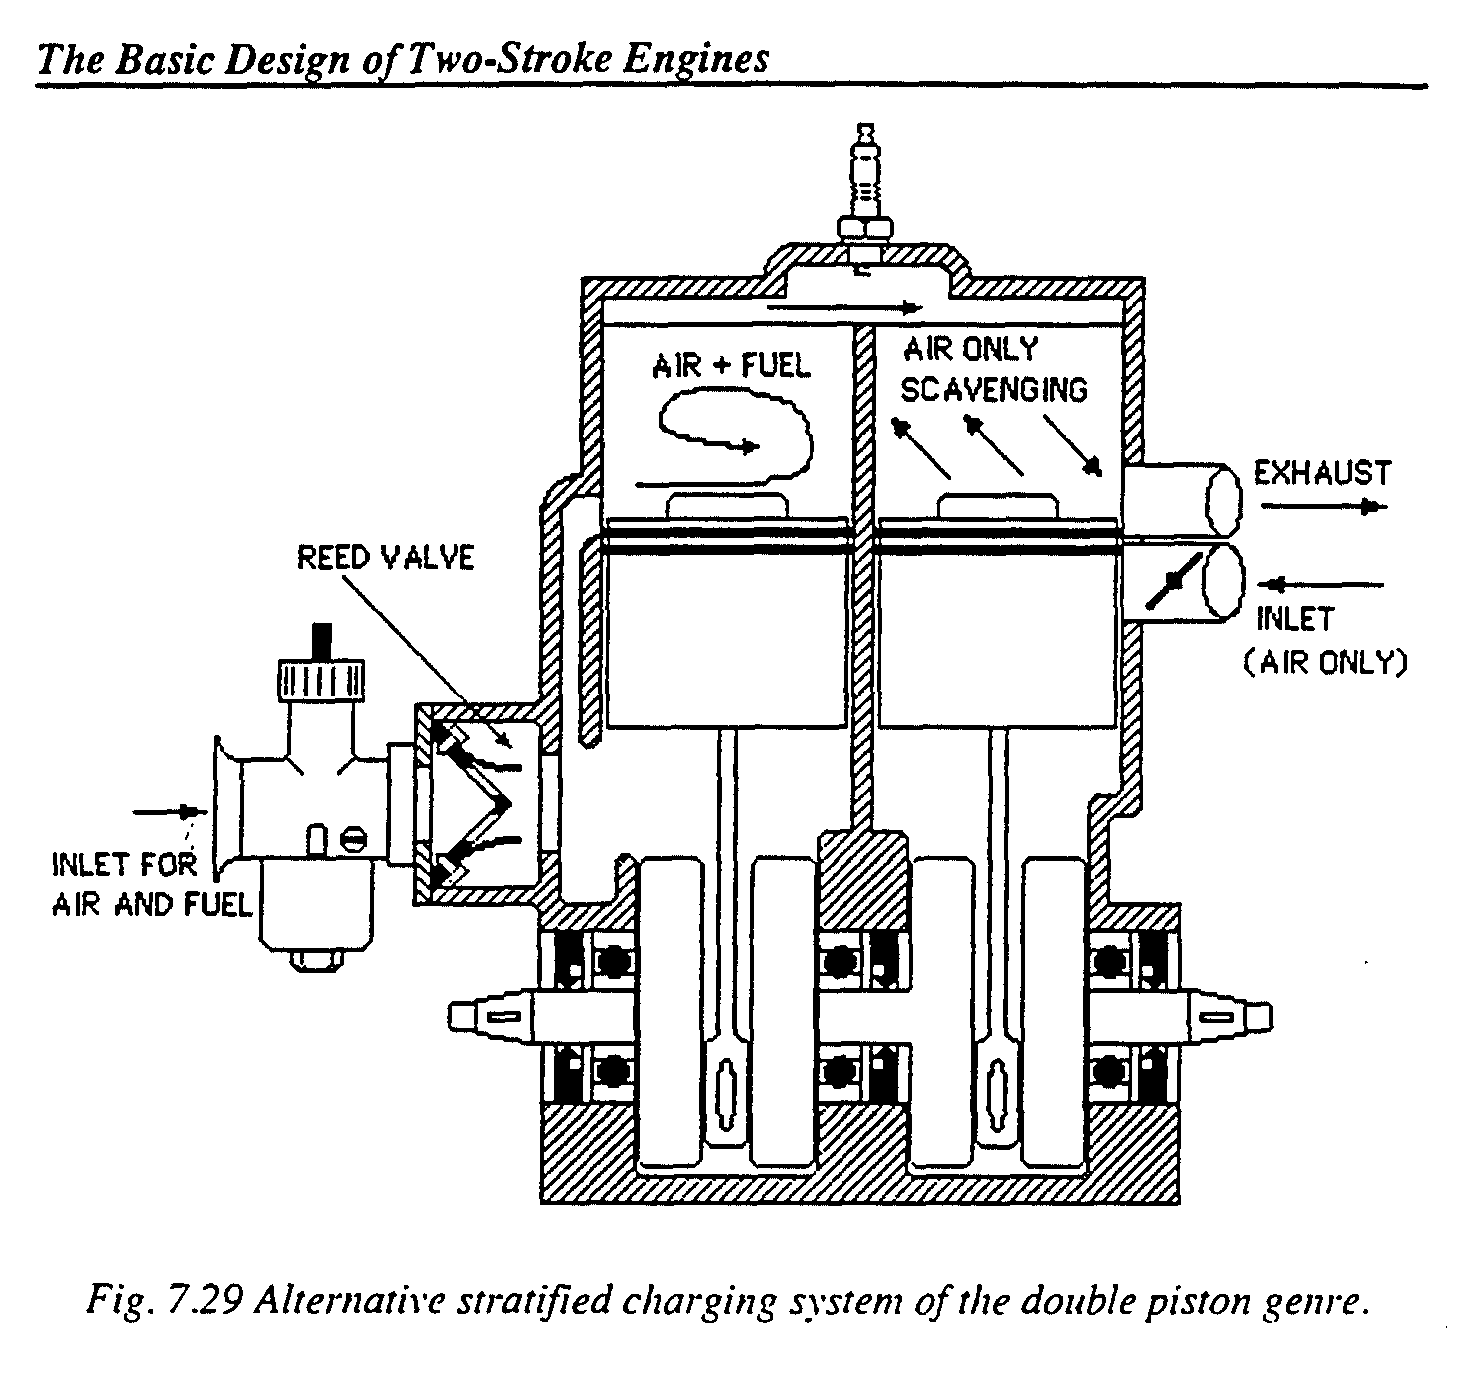 WO1994023191A1 - Two-cycle engine with reduced hydrocarbon